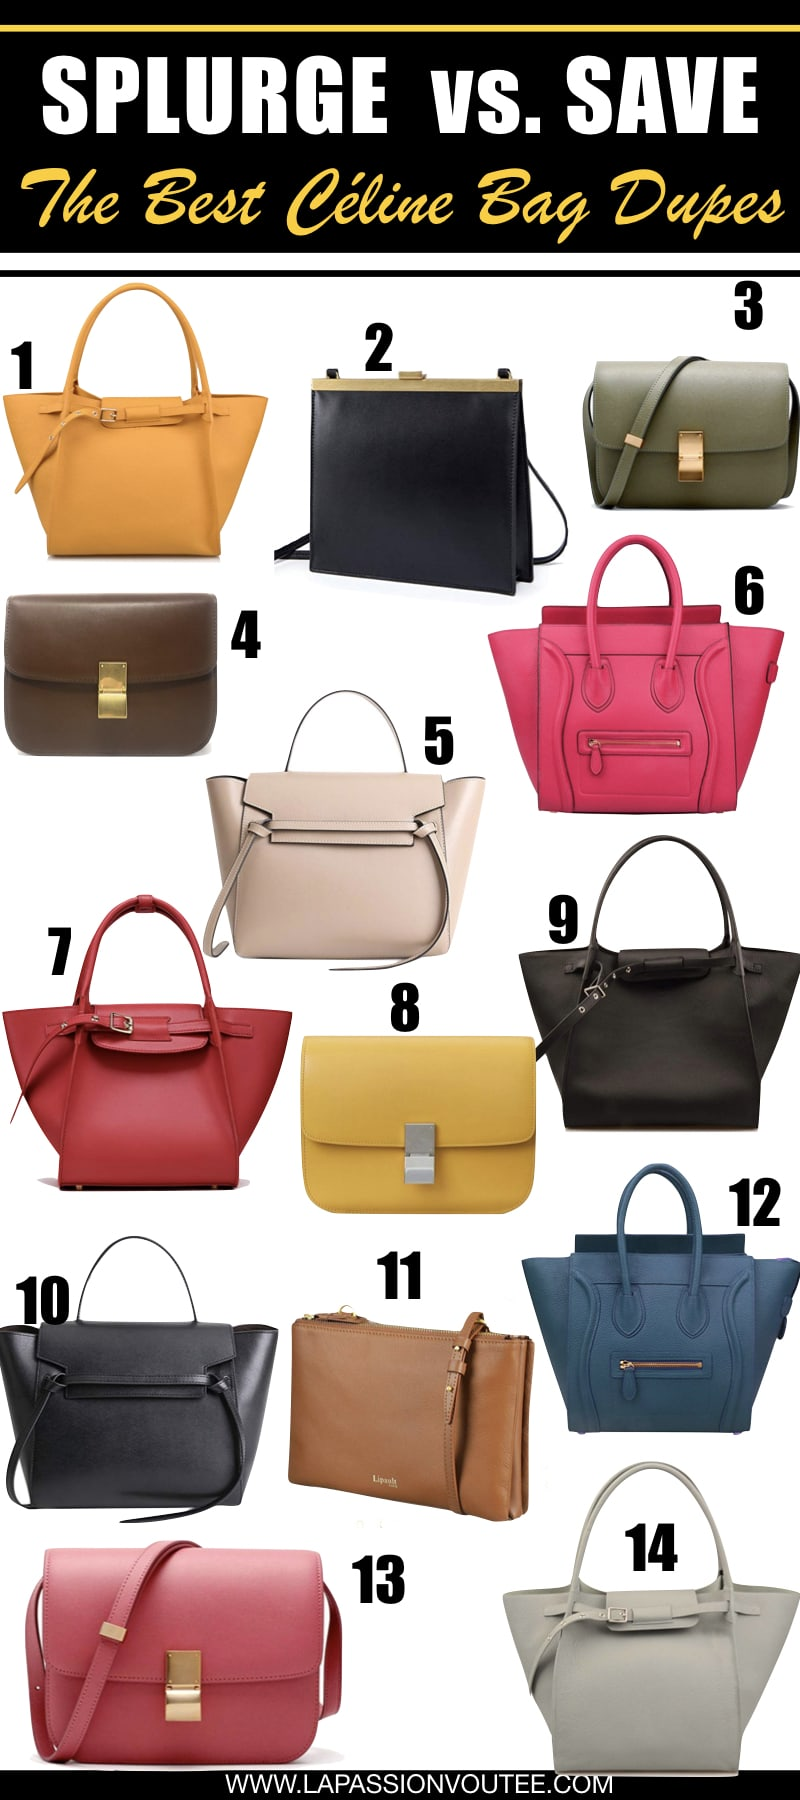 These are the best Celine handbag dupes